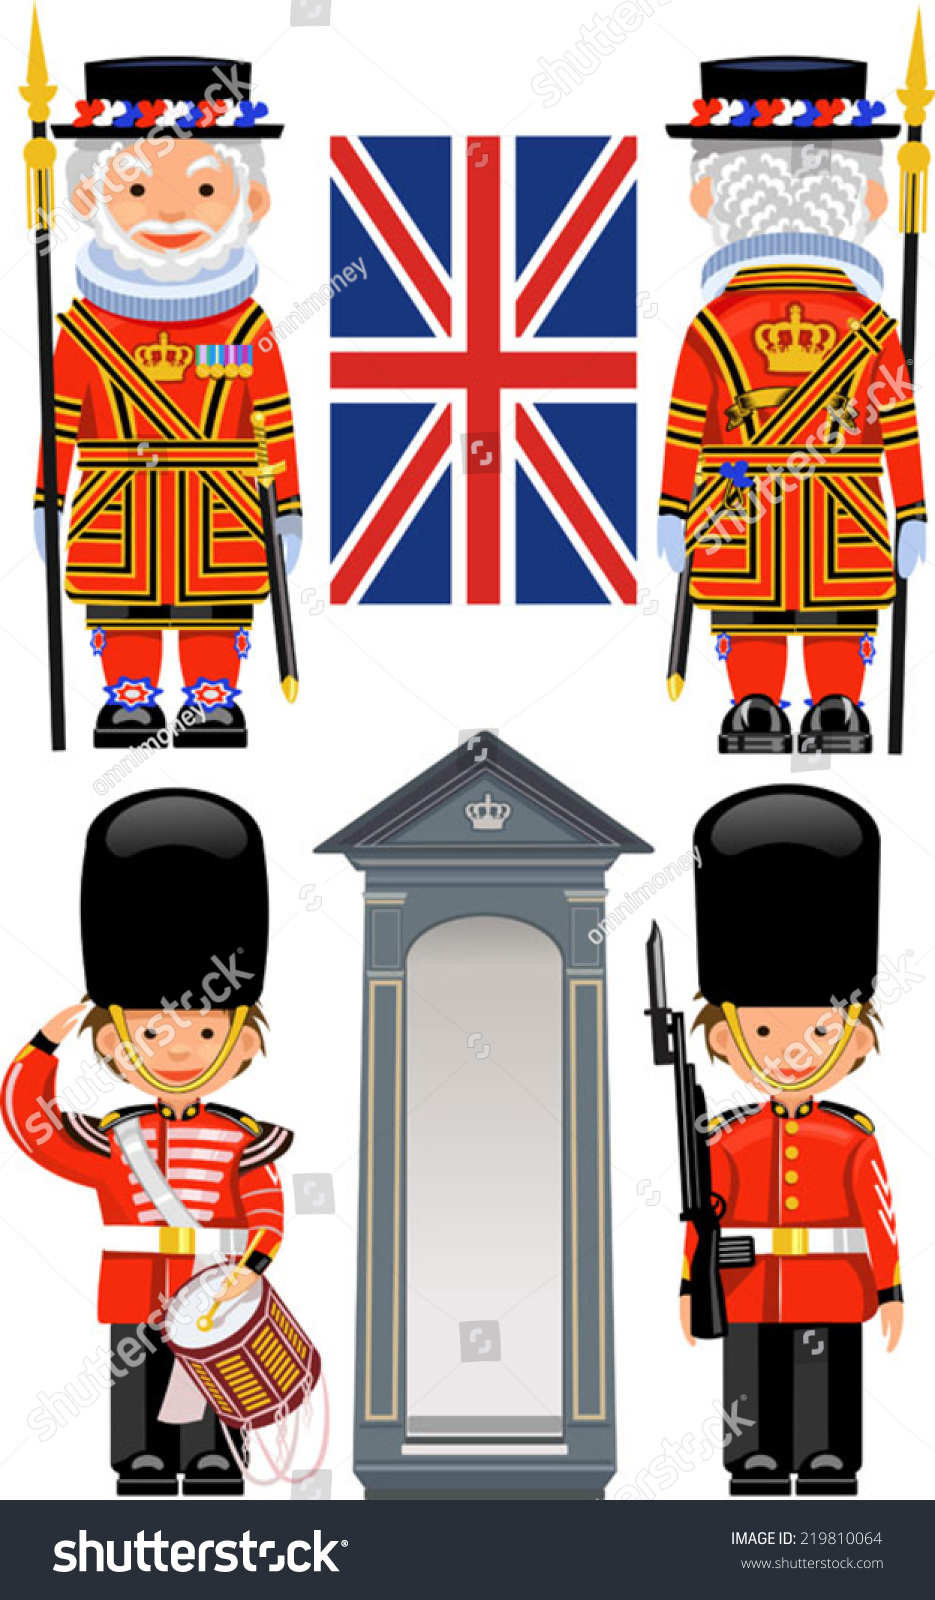 315 Buckingham Palace Stock Illustrations Cliparts And